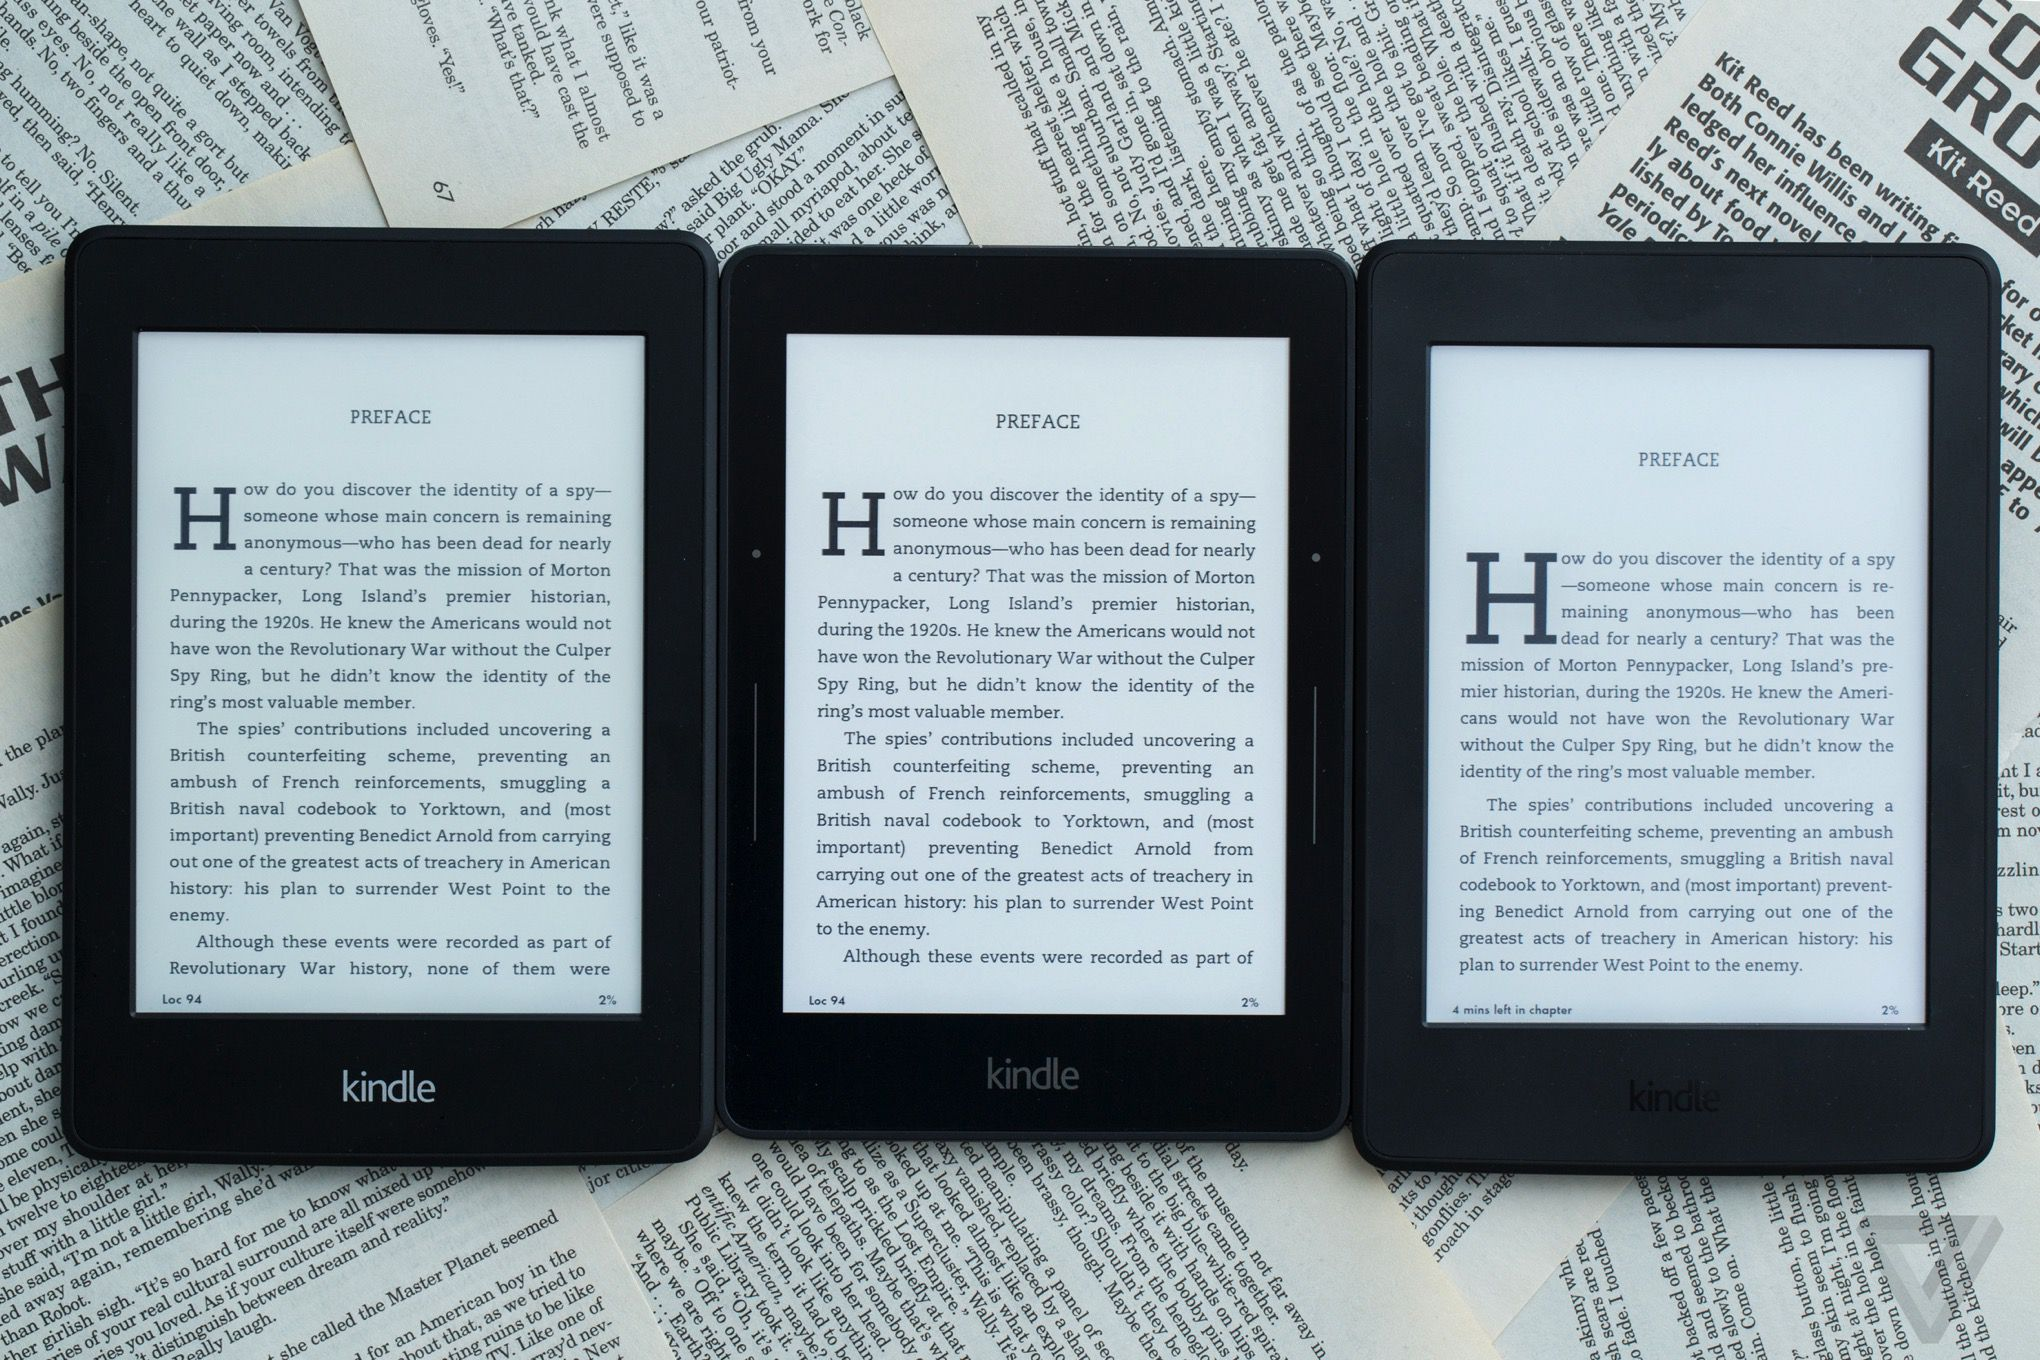 How to Buy and Download Kindle Books on Kindle Paperwhite